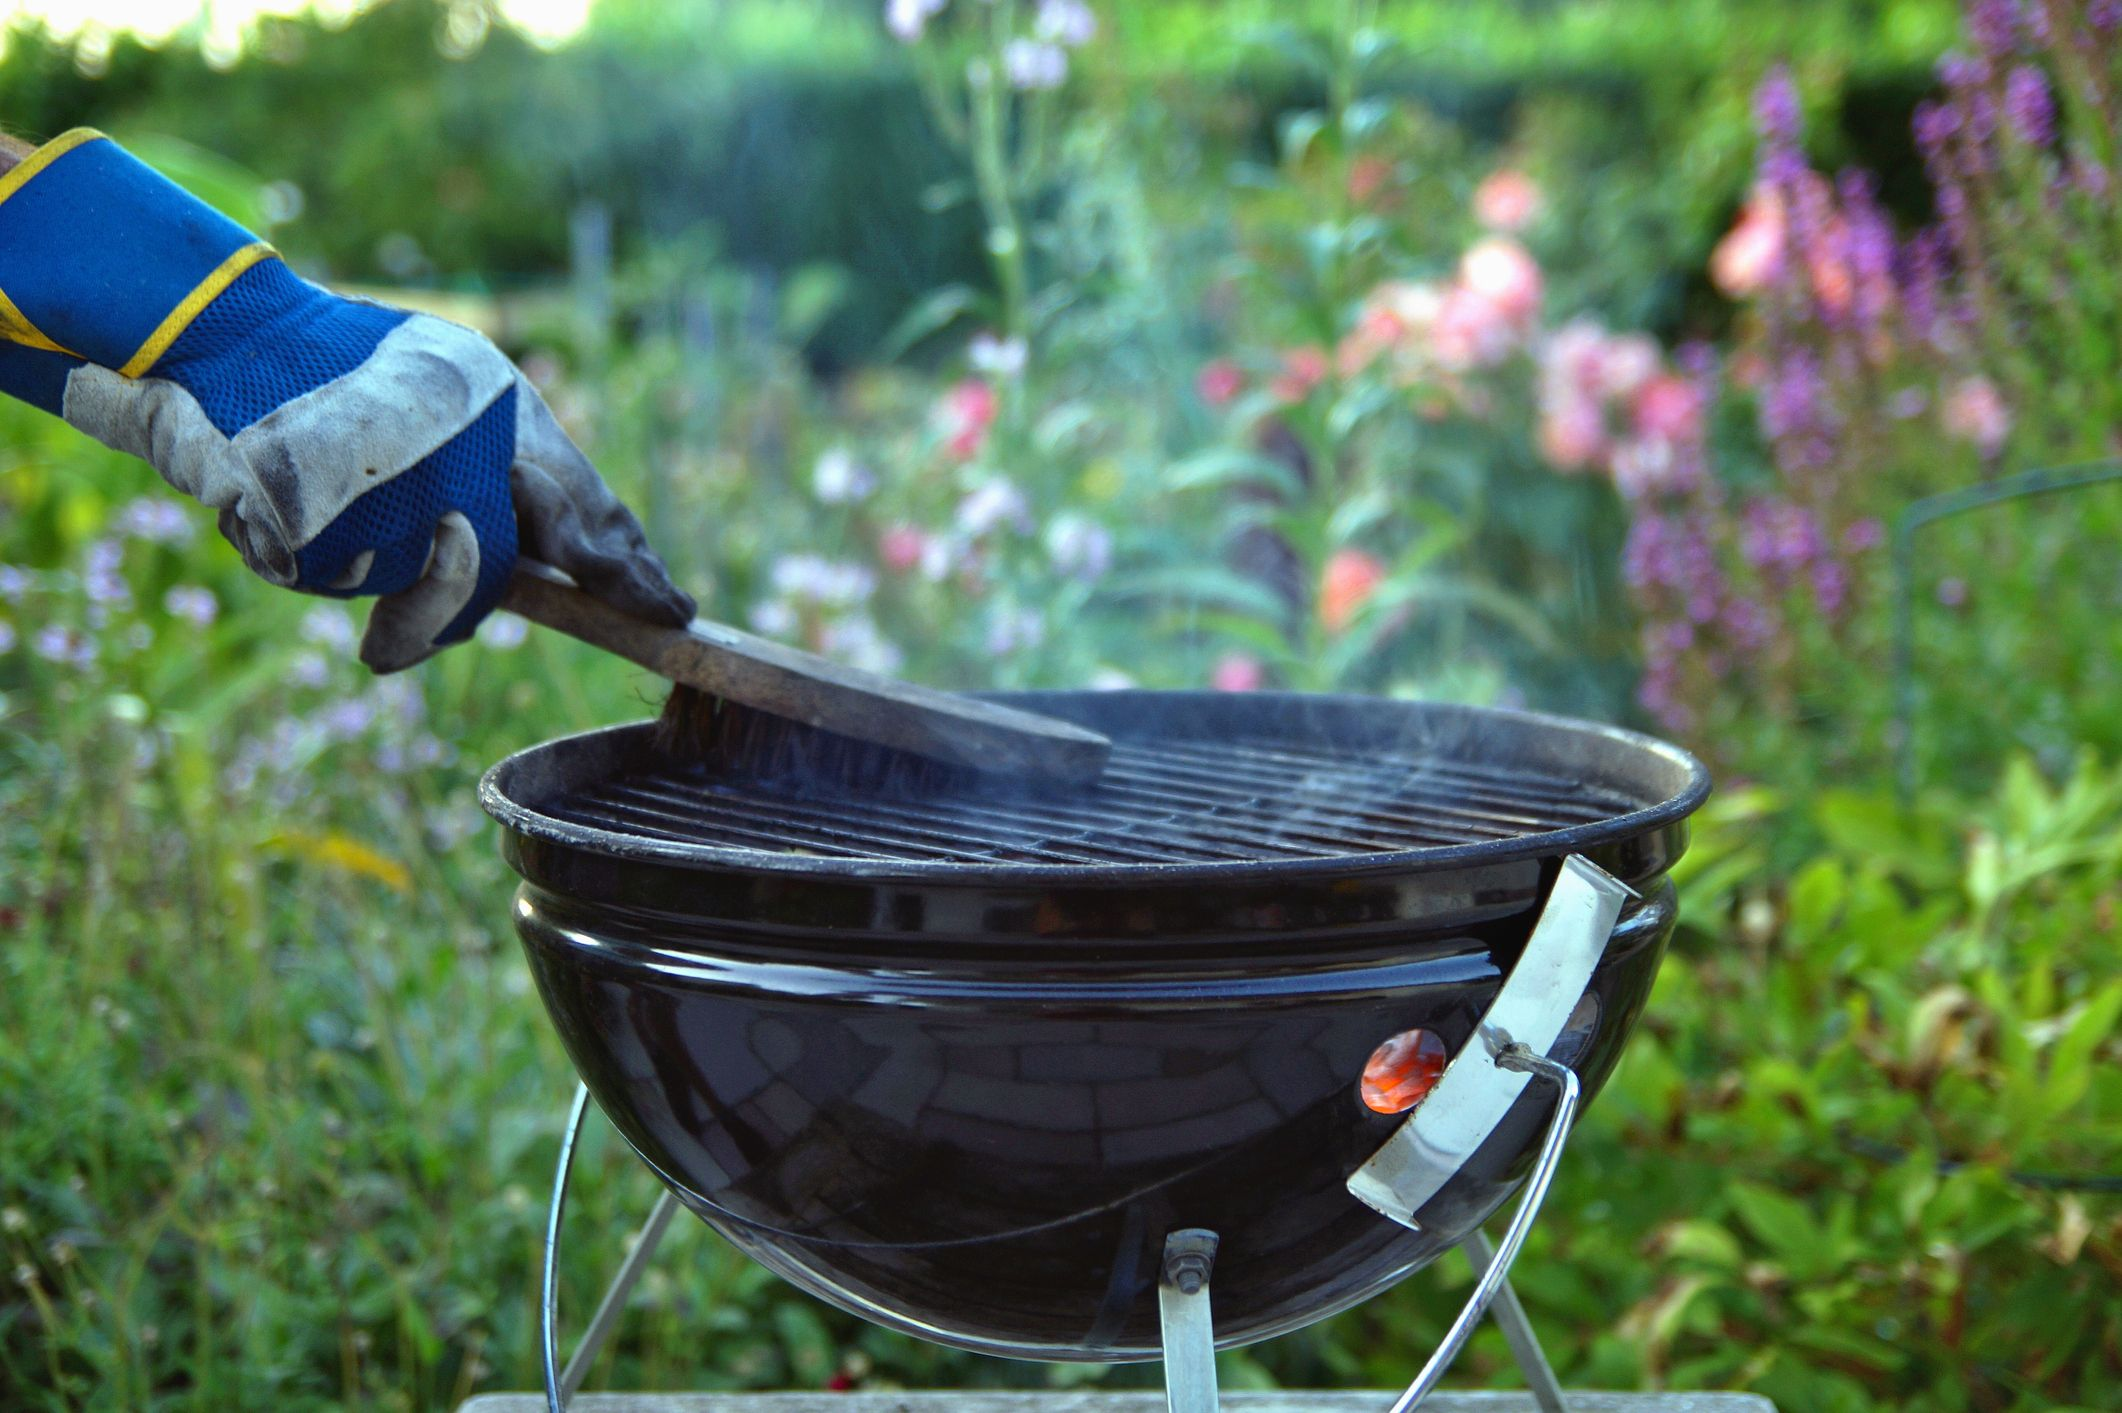 How To Clean A Barbecue 12 Bbq Cleaner Hacks